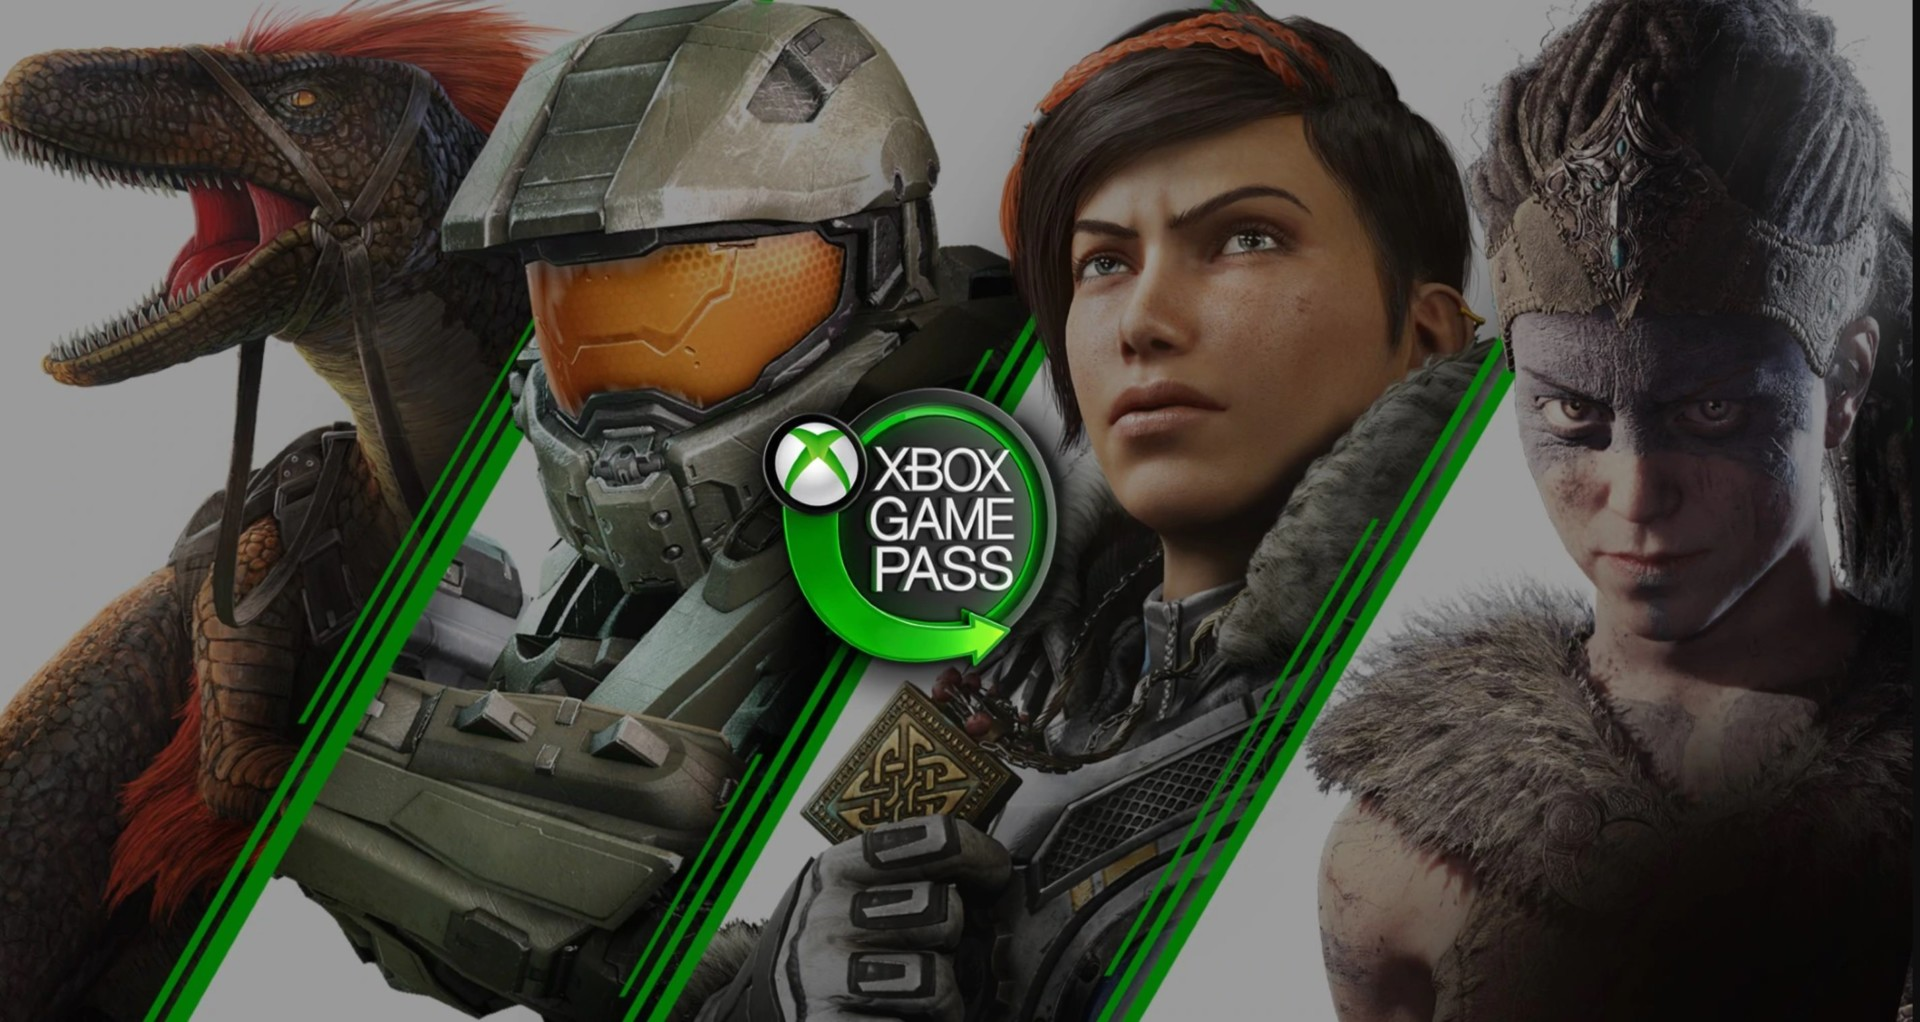 Beta-for-Xbox-Games-Pass-for-PC-is-ending-price-increase-imminent-1.jpg